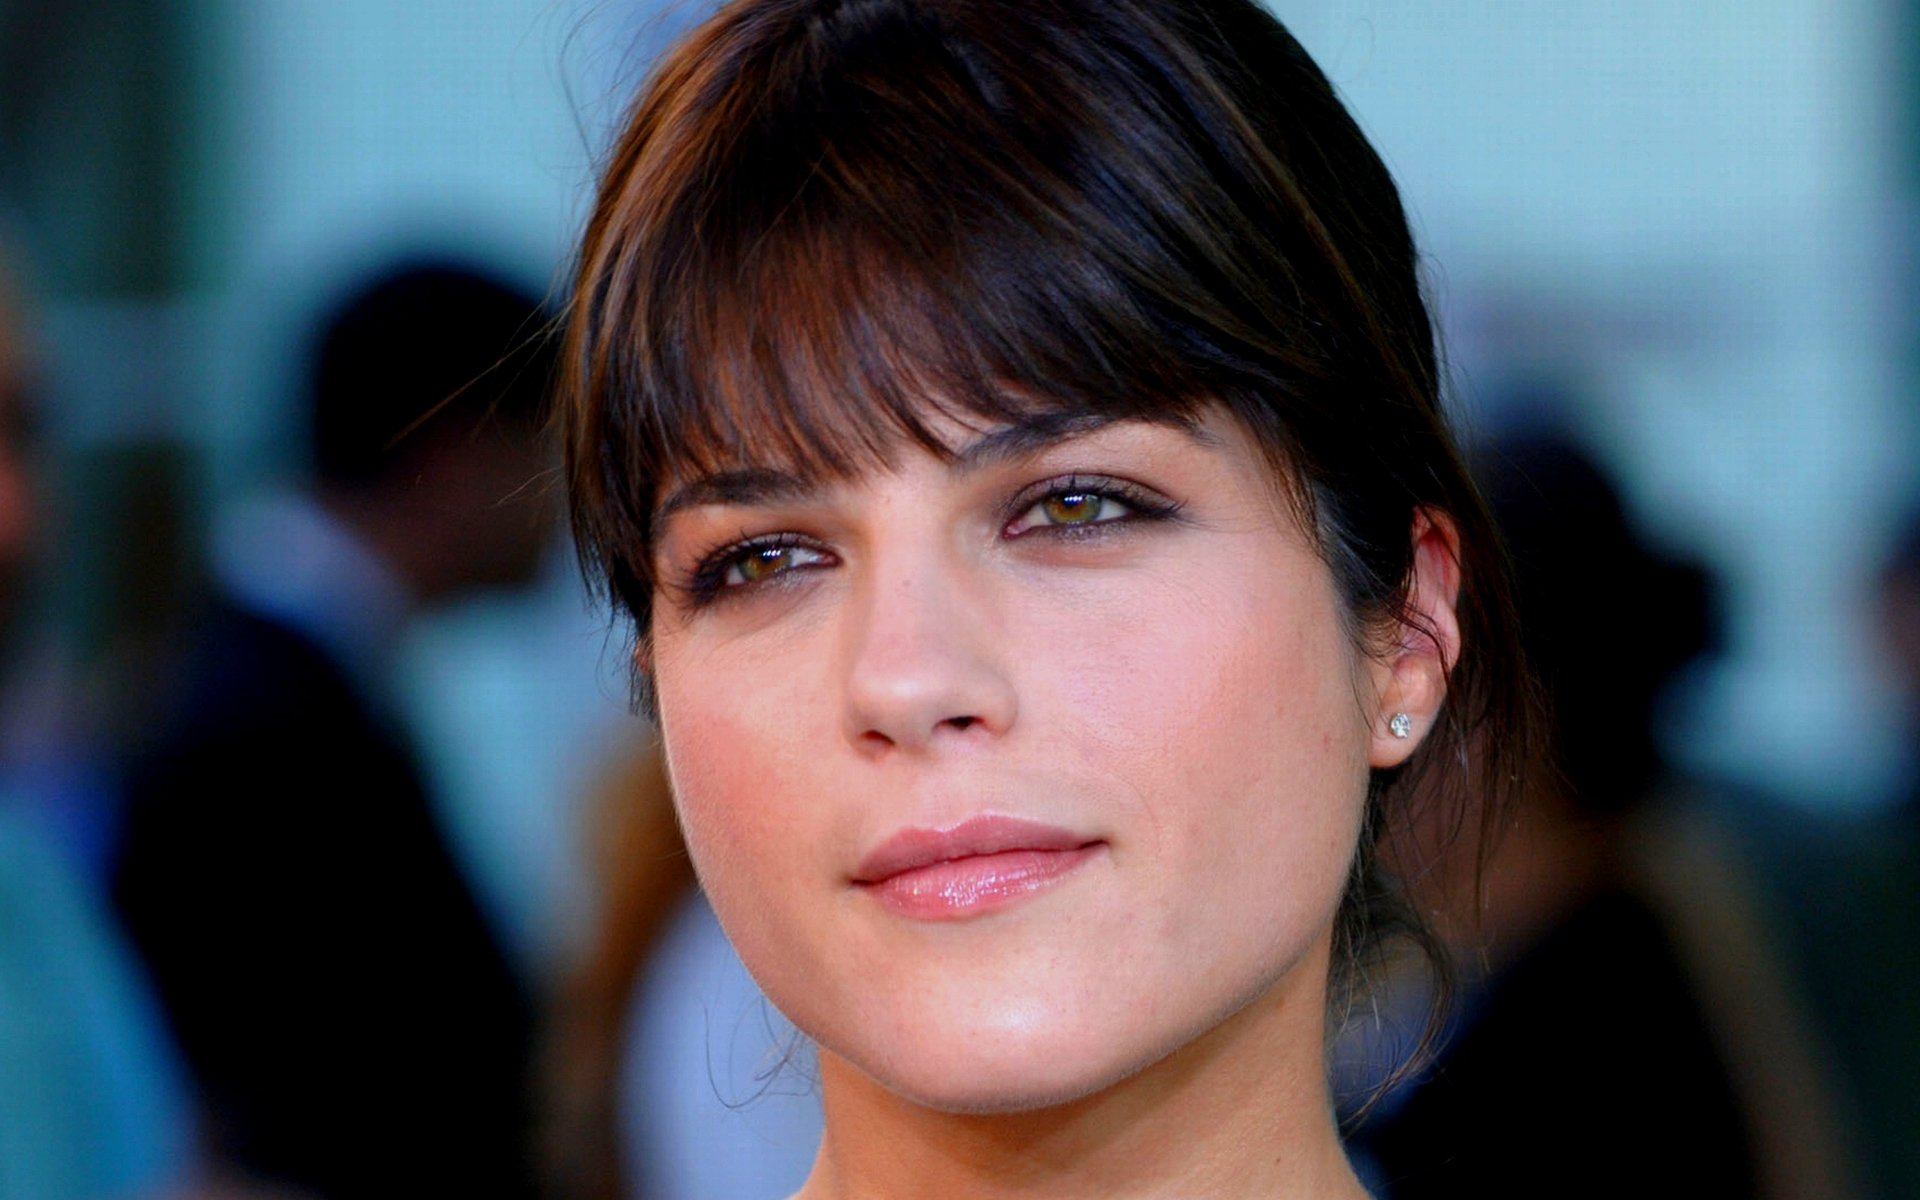 Selma Blair Southfield 23 juni 1972 is een Amerikaans actrice Ze speelde onder meer in de films Cruel Intentions Legally Blonde en de The Sweetest Thing